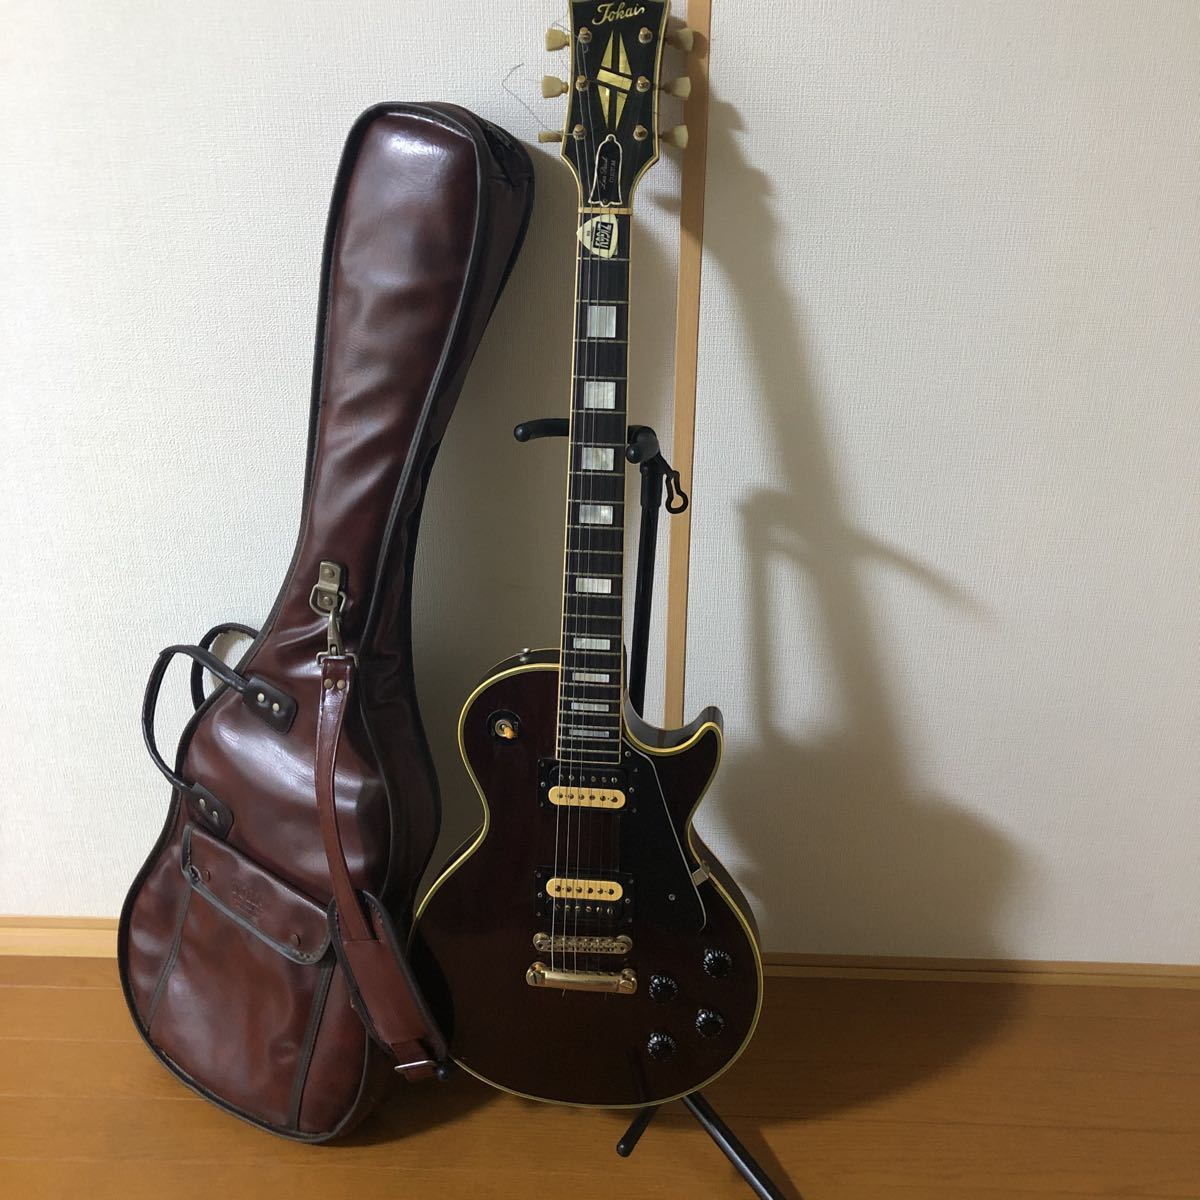 page.auctions.yahoo.co.jp